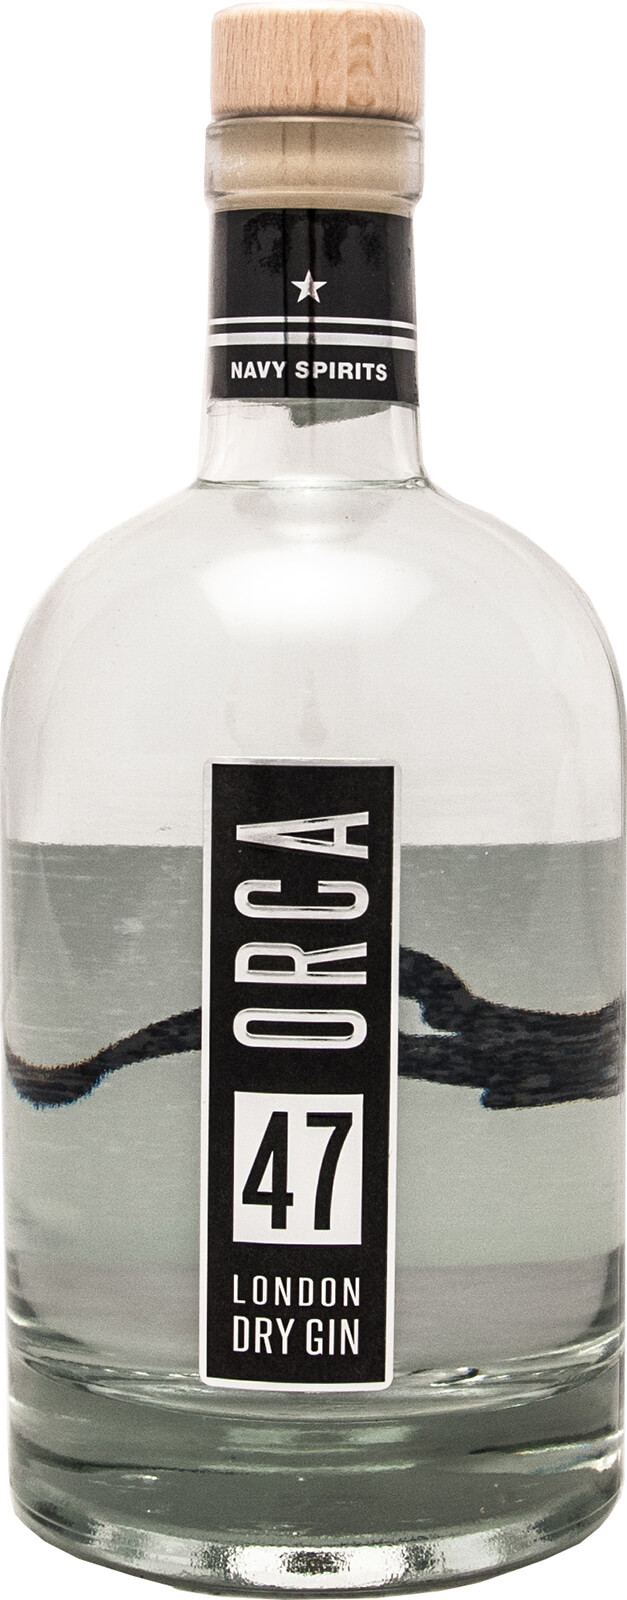 Barzubehör Hamburg Orca London Dry Gin 5 Liter 47 Vol